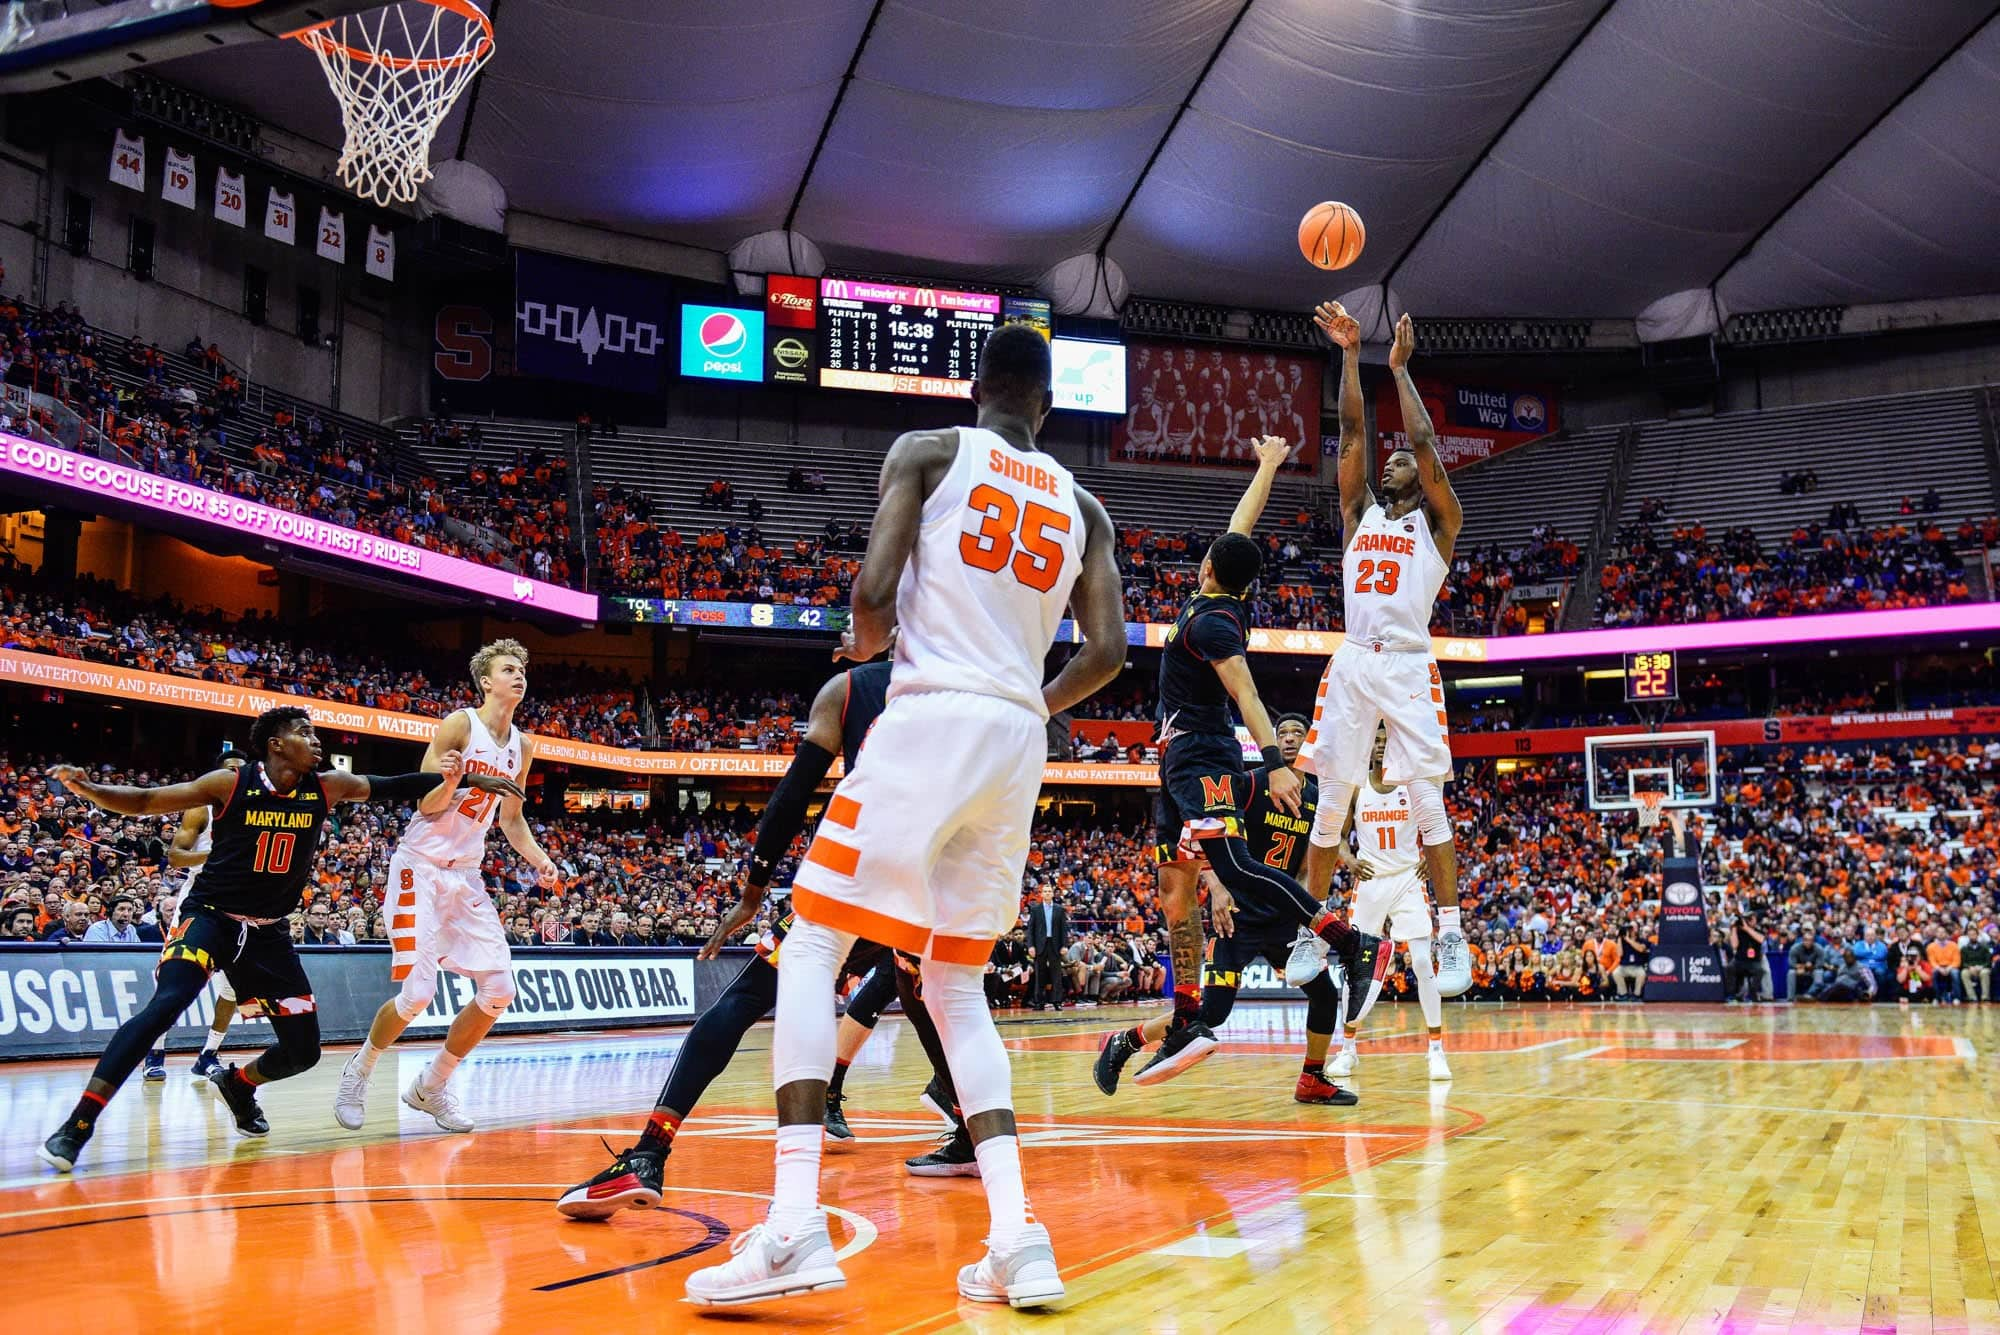 Men's basketball versus Maryland